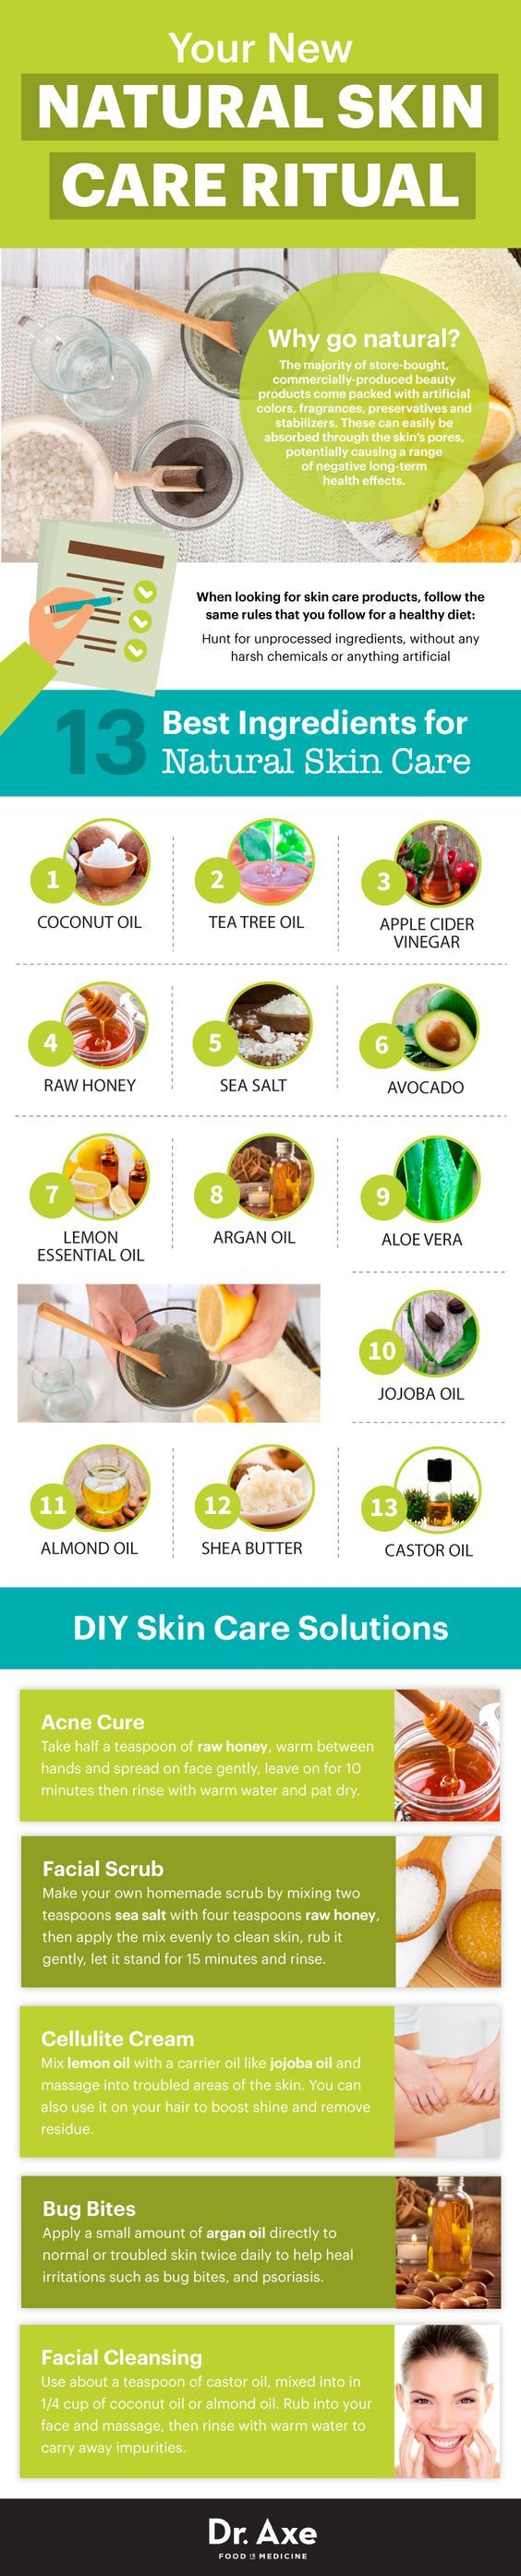 Using natural skin treatments are an effective way to reduce your exposure to nasty chemicals and toxins in a lot of cosmetic products // skinnymetea.com.au